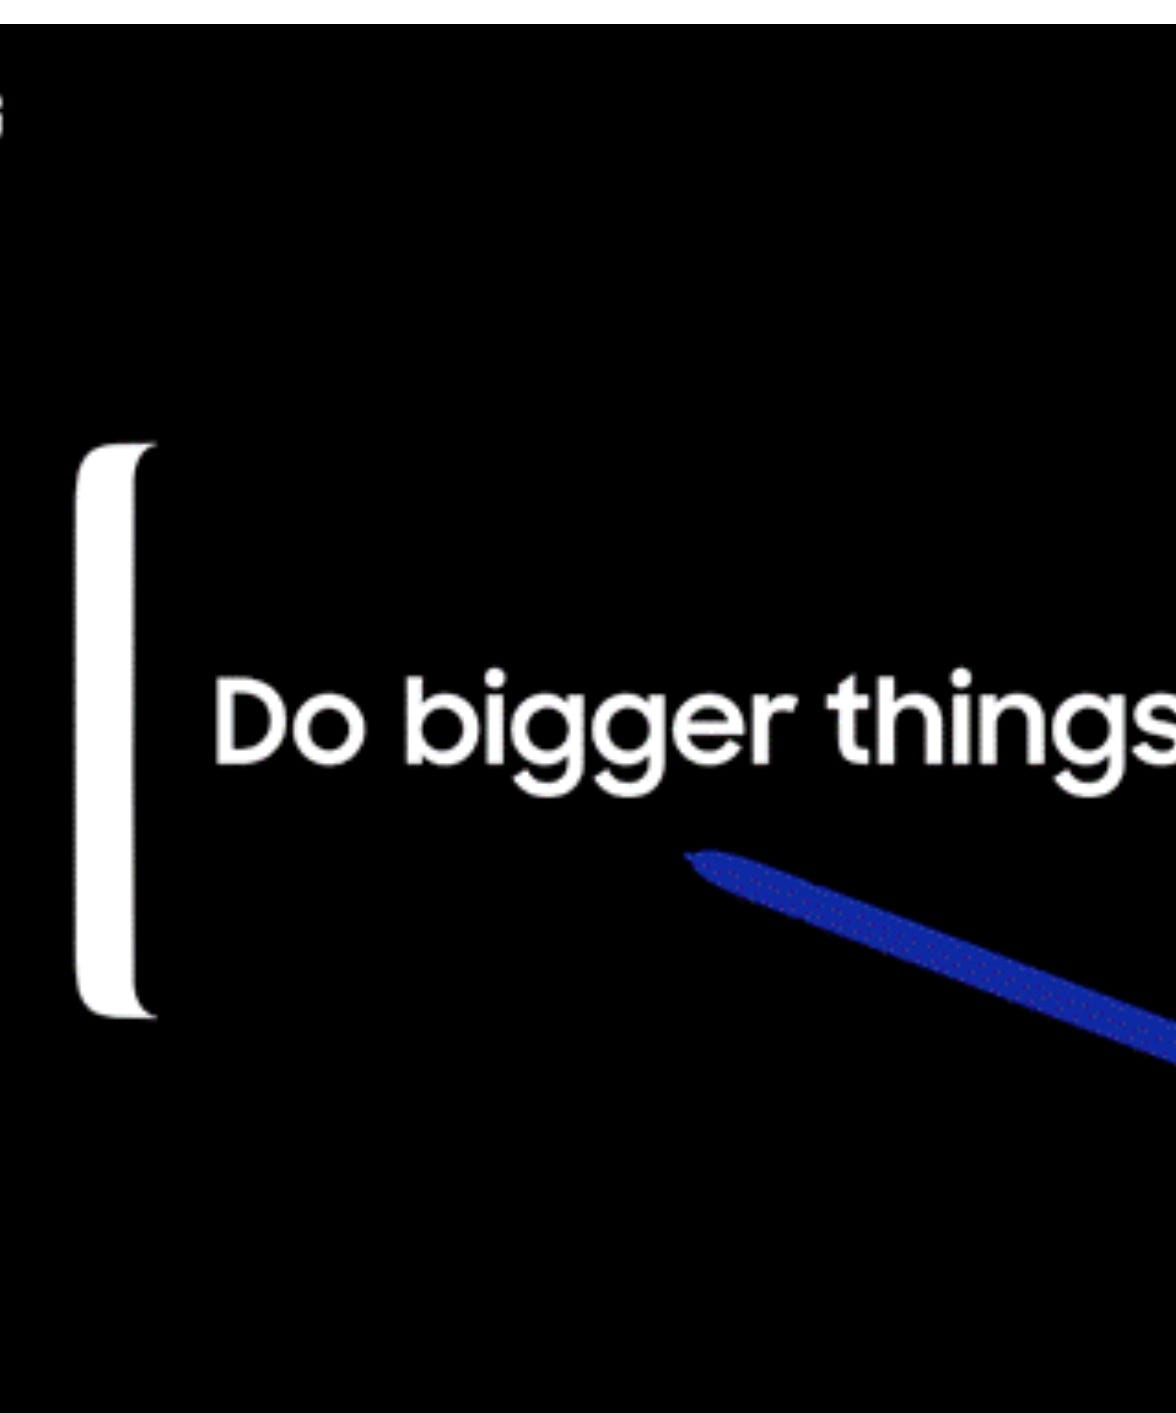 Samsung looks to go bigger than ever with Note 9